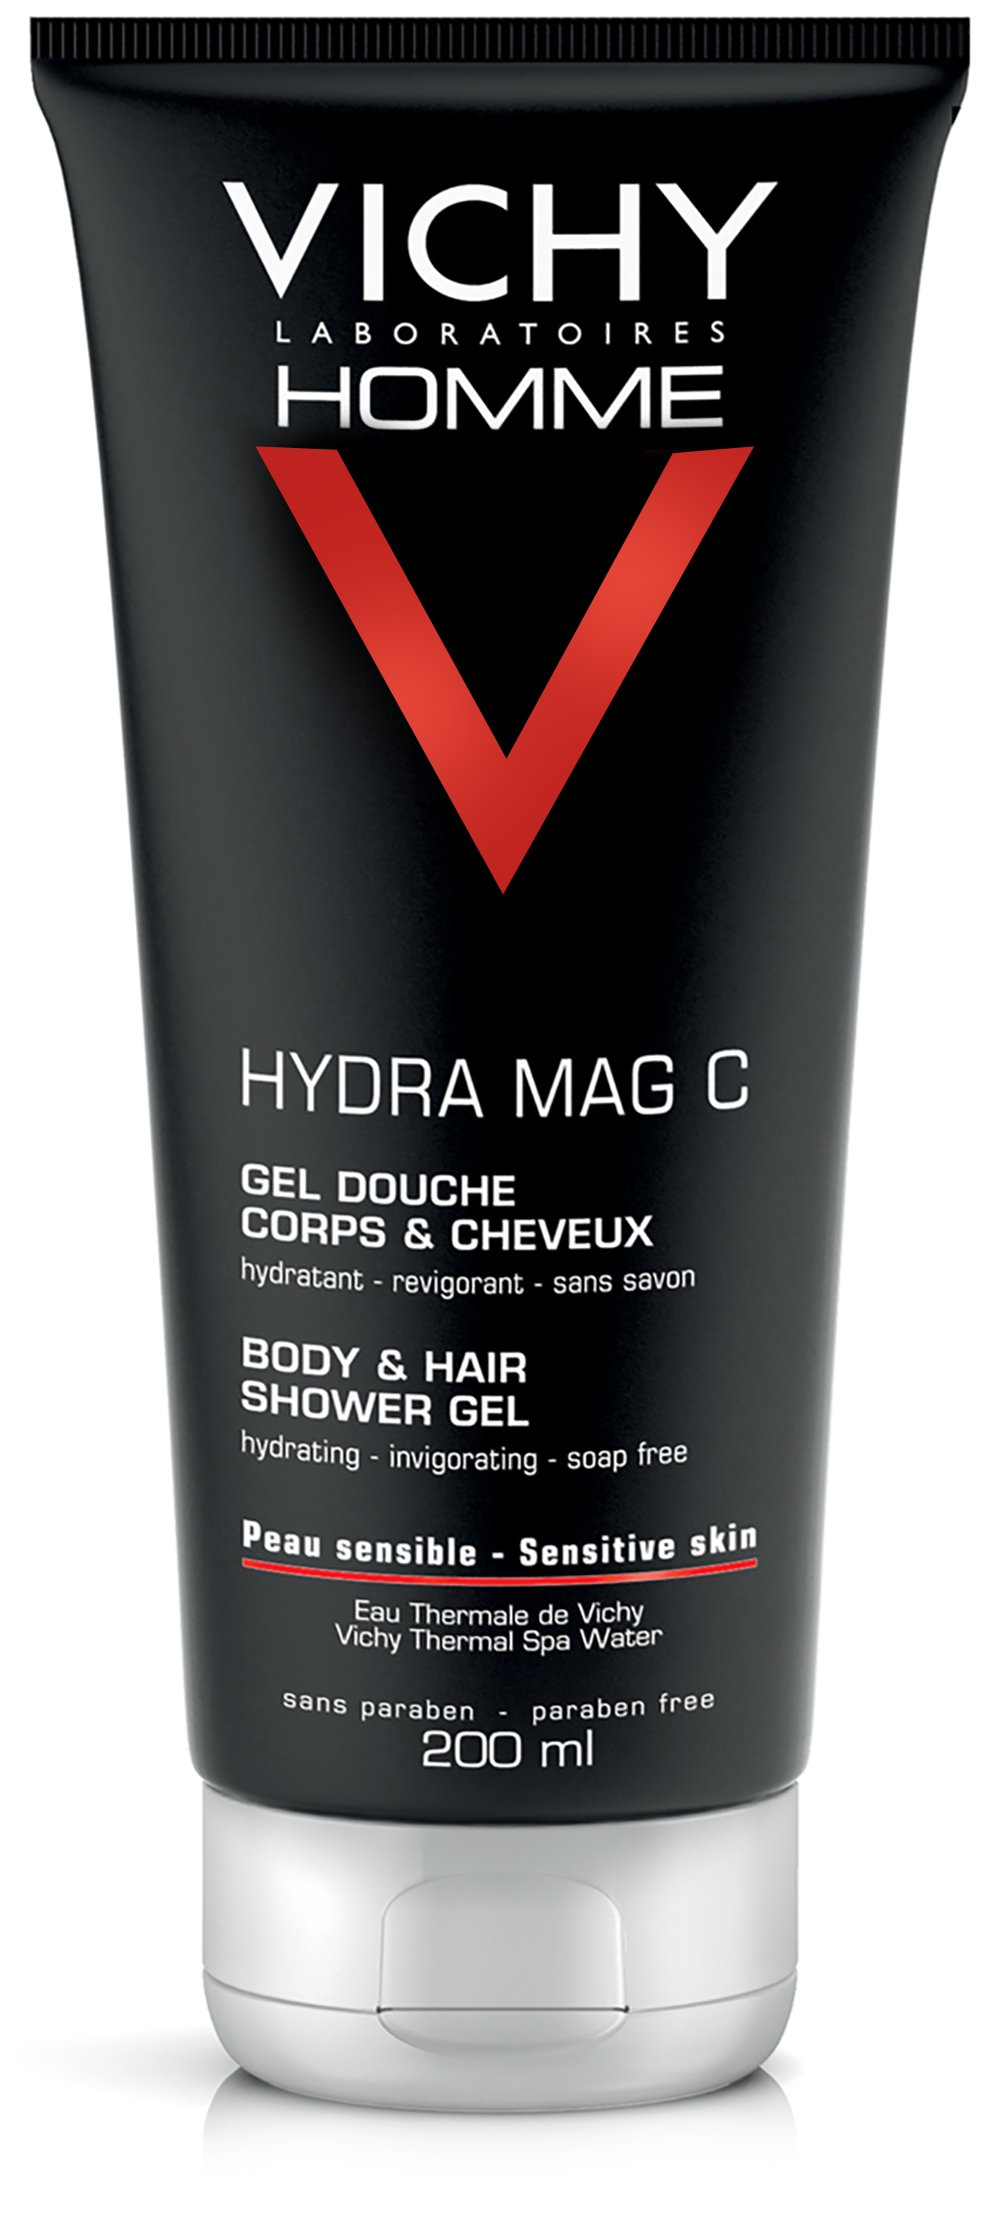 Vichy Homme Anti-Irritation Body Wash for Men with Pure Vitamin C & Salicylic Acid to Soothe & Hydrate Skin, Suitable for Sensitive Skin